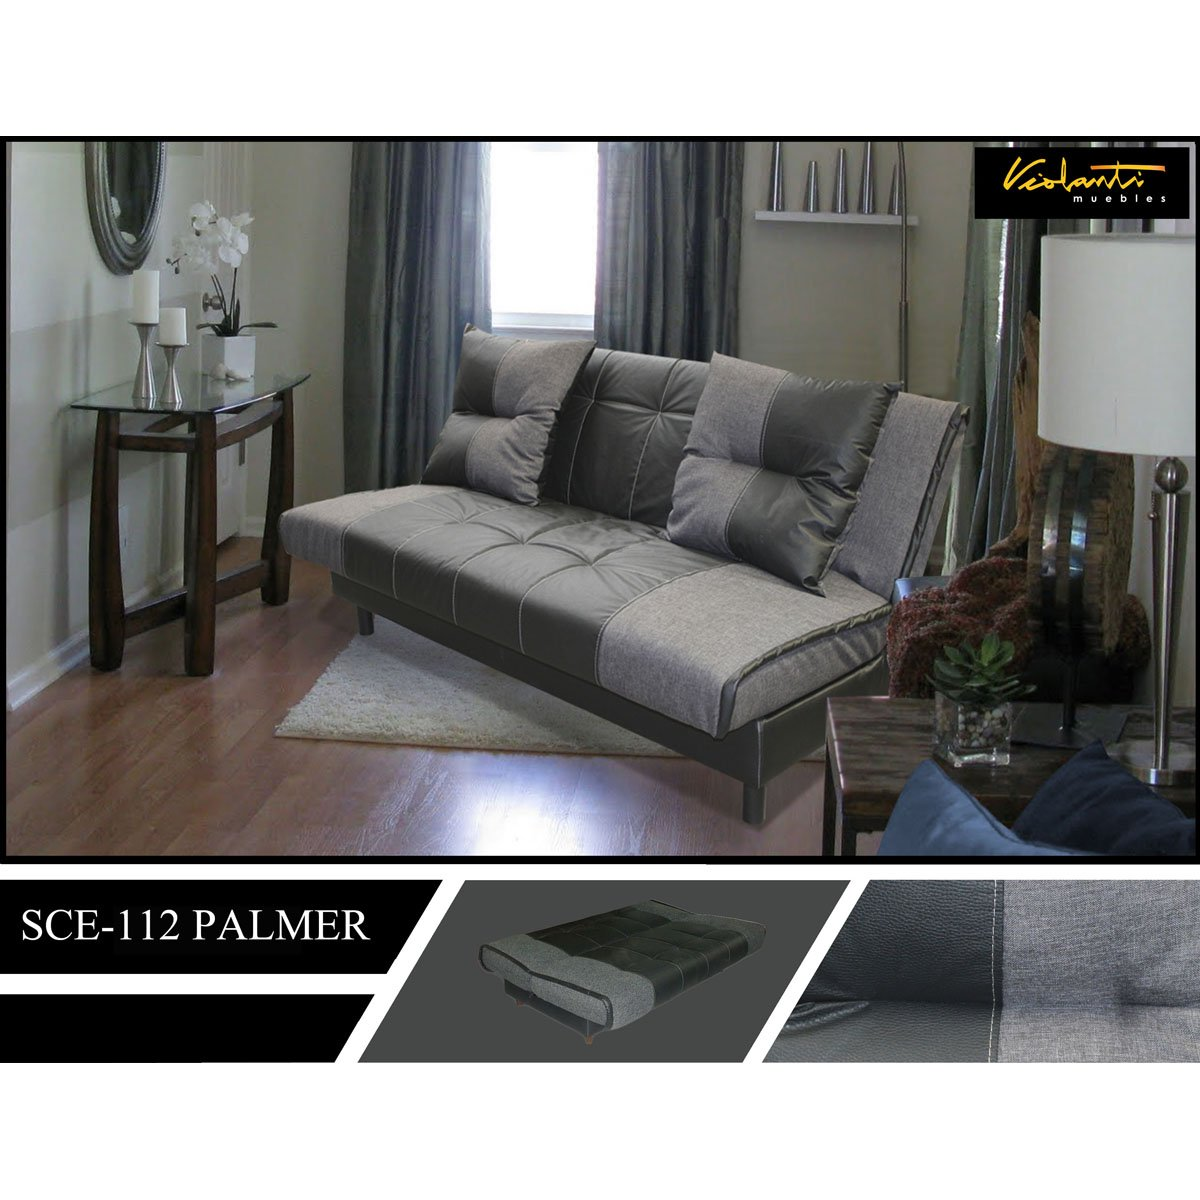 palmer sofa leather sectional with left facing chaise sofá cama sears com mx me entiende